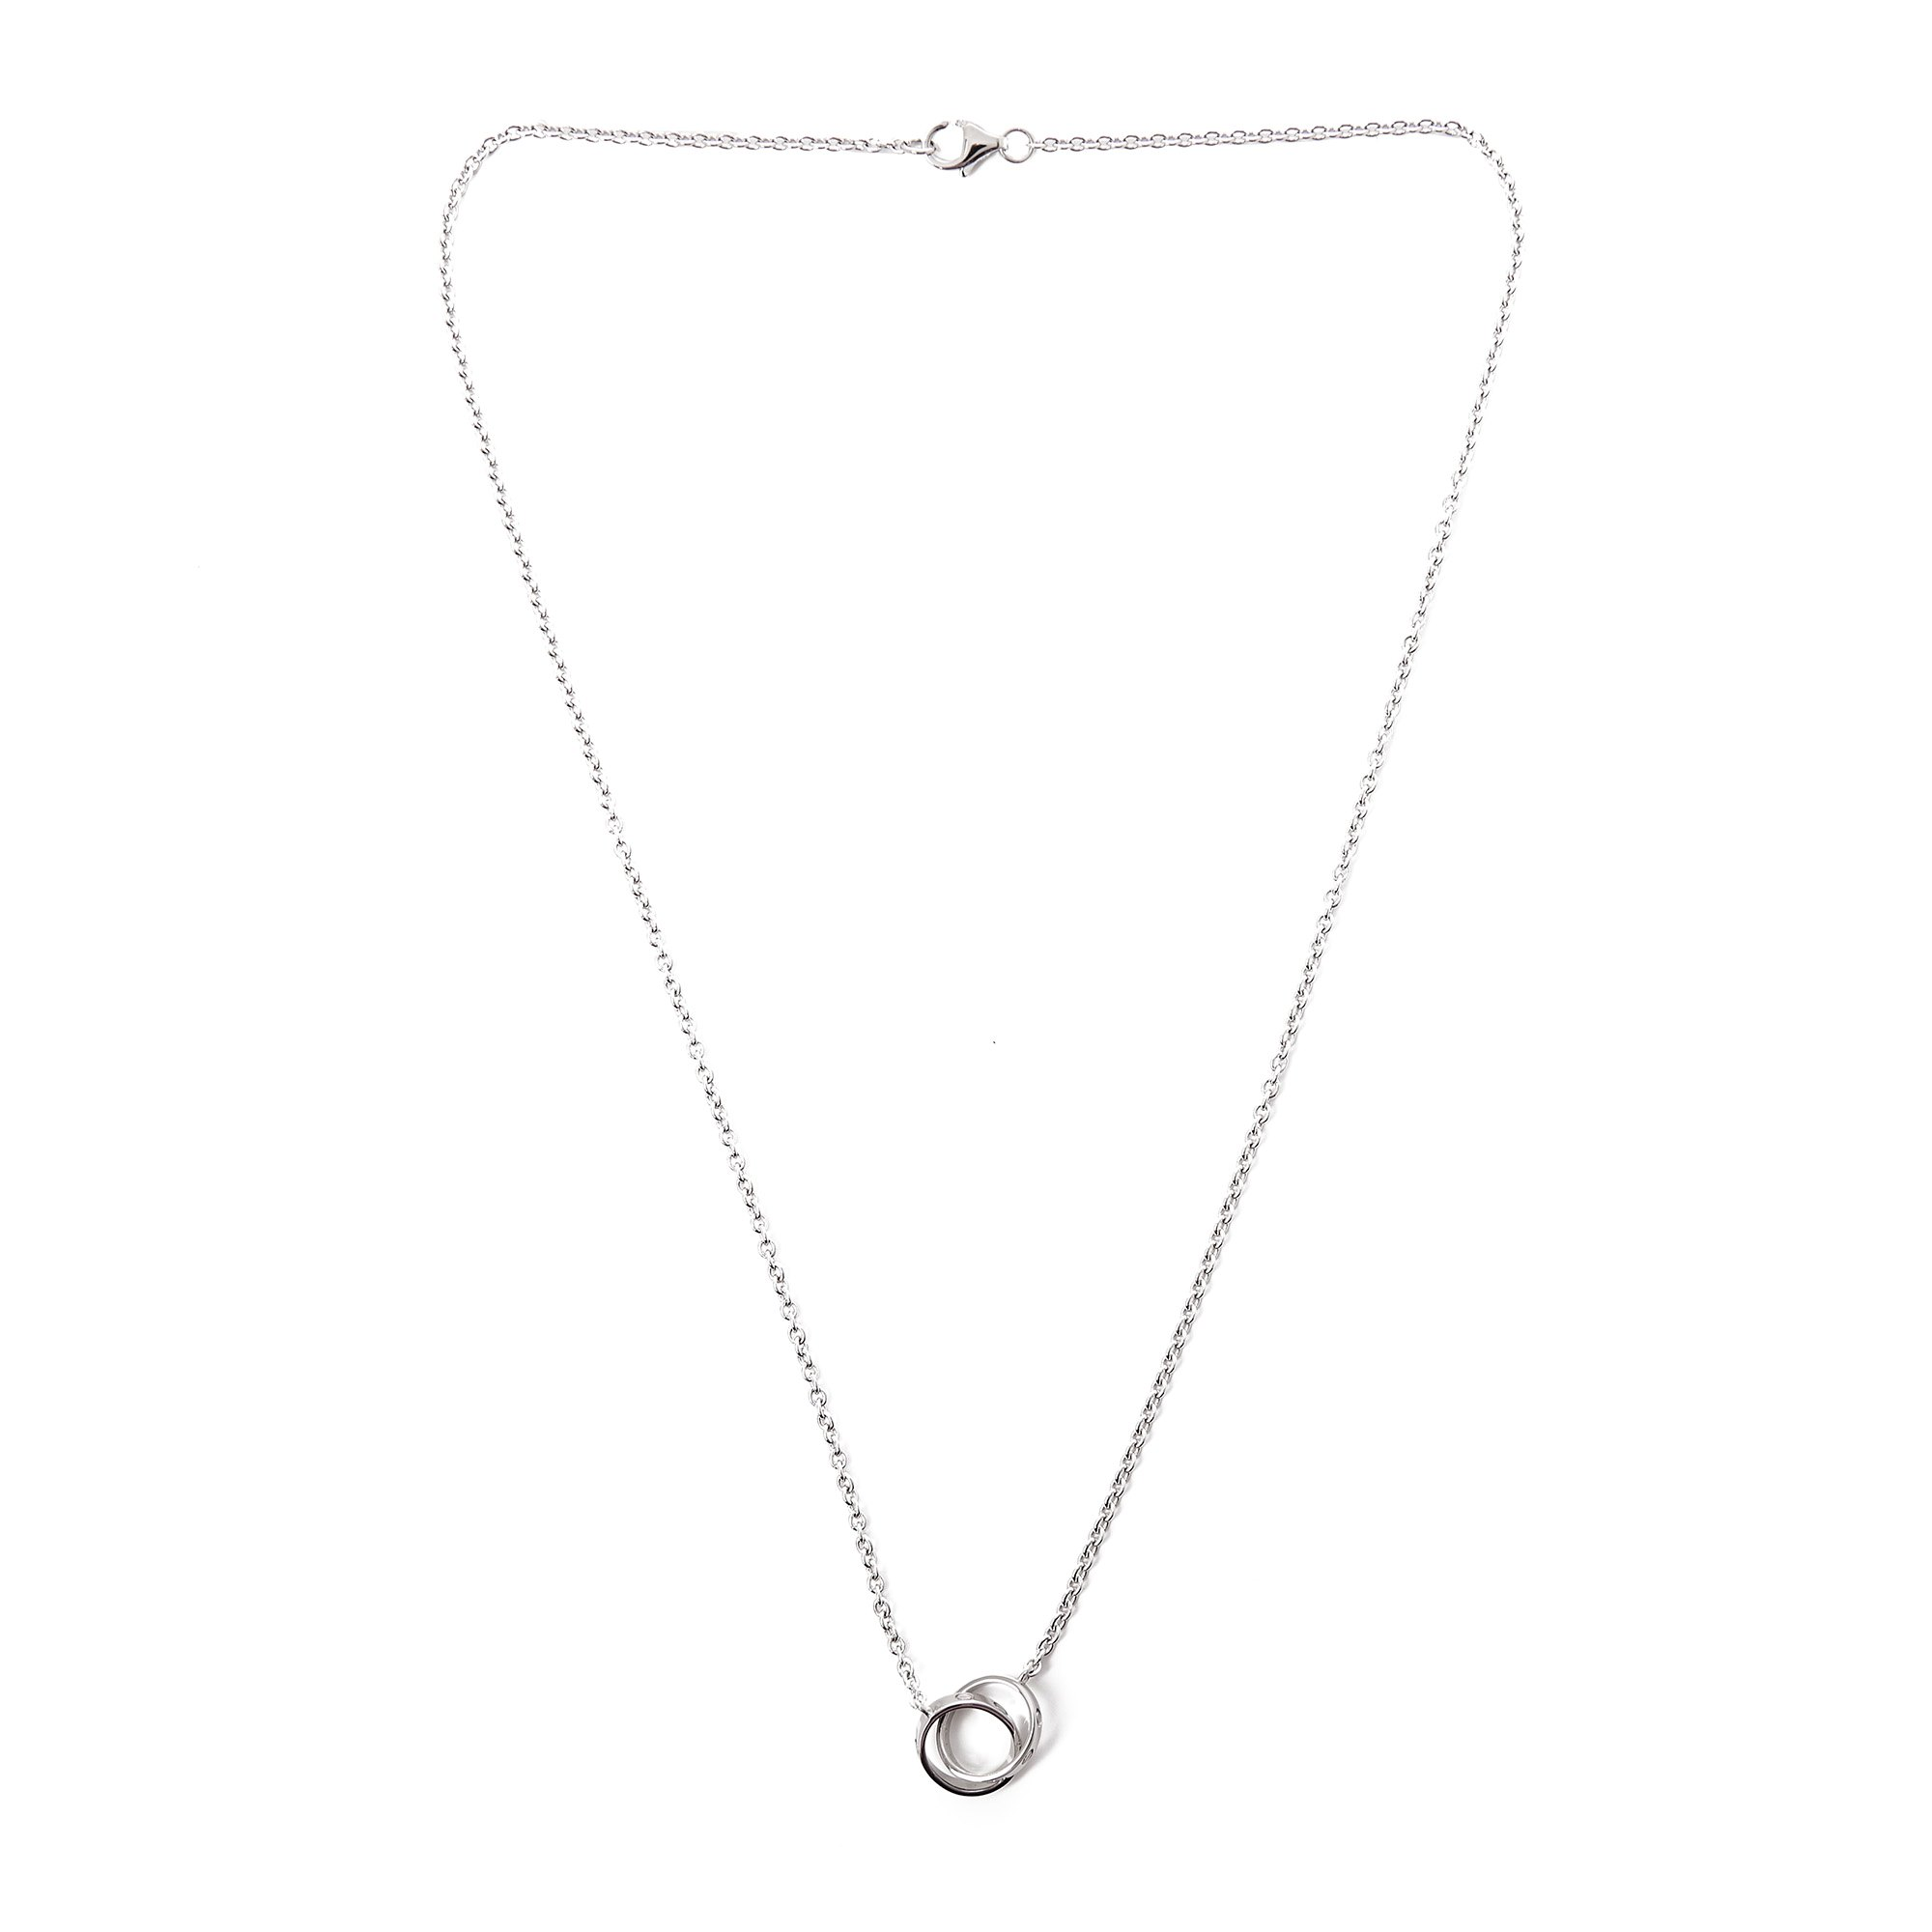 Cartier 18k White Gold Double Love Ring Necklace